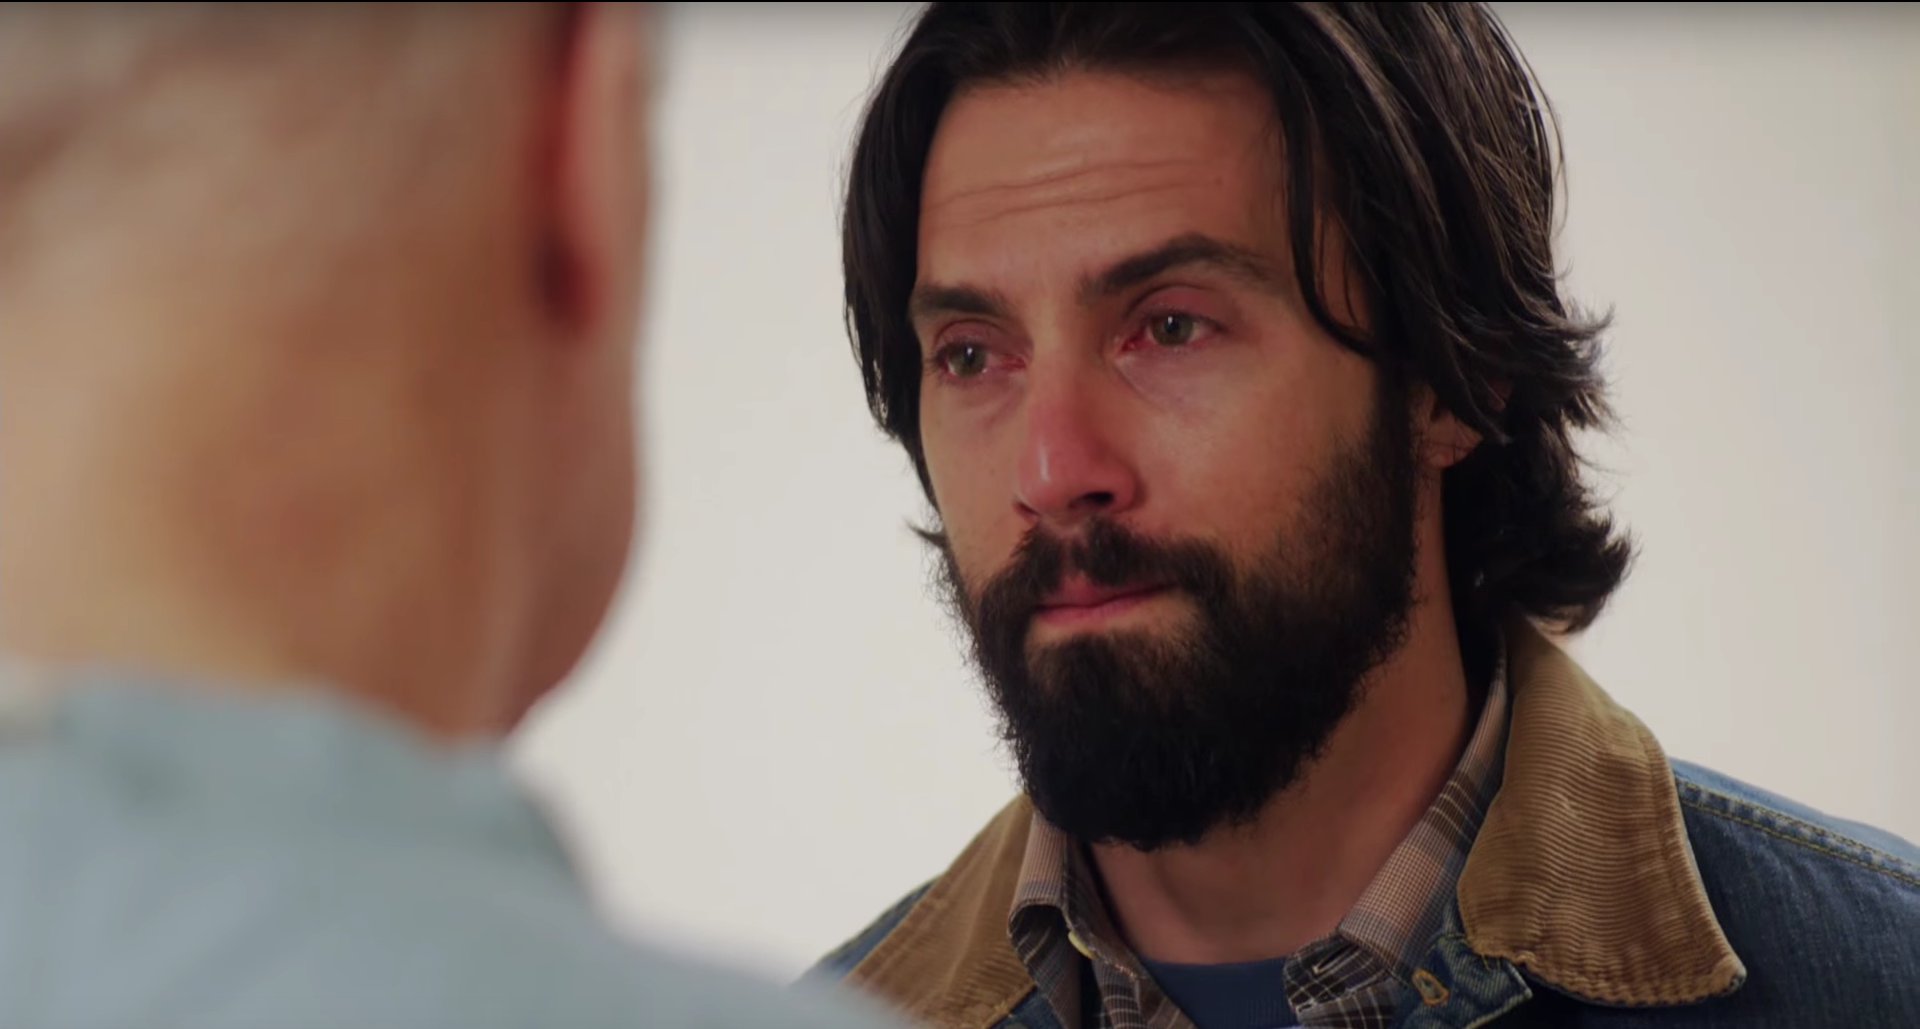 'This Is Us' is the touching drama we all need in our lives